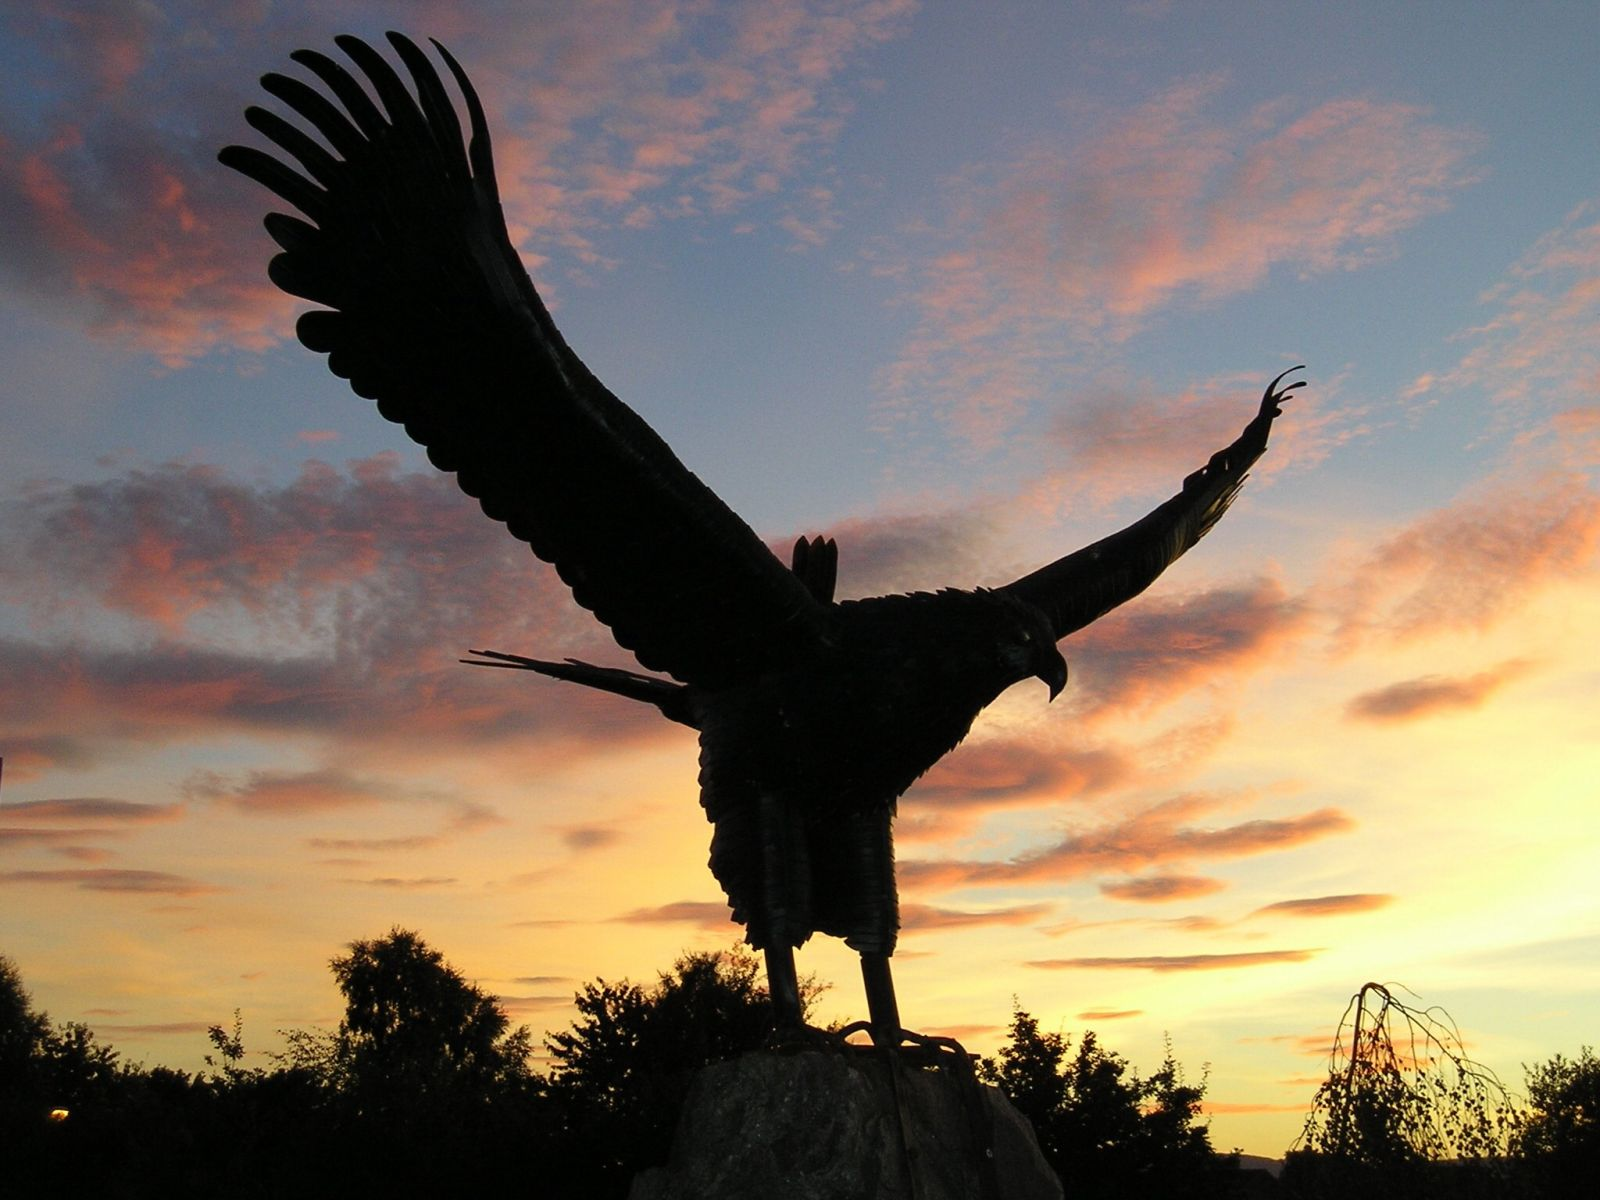 Eagle statue silhouetted against the sunrise